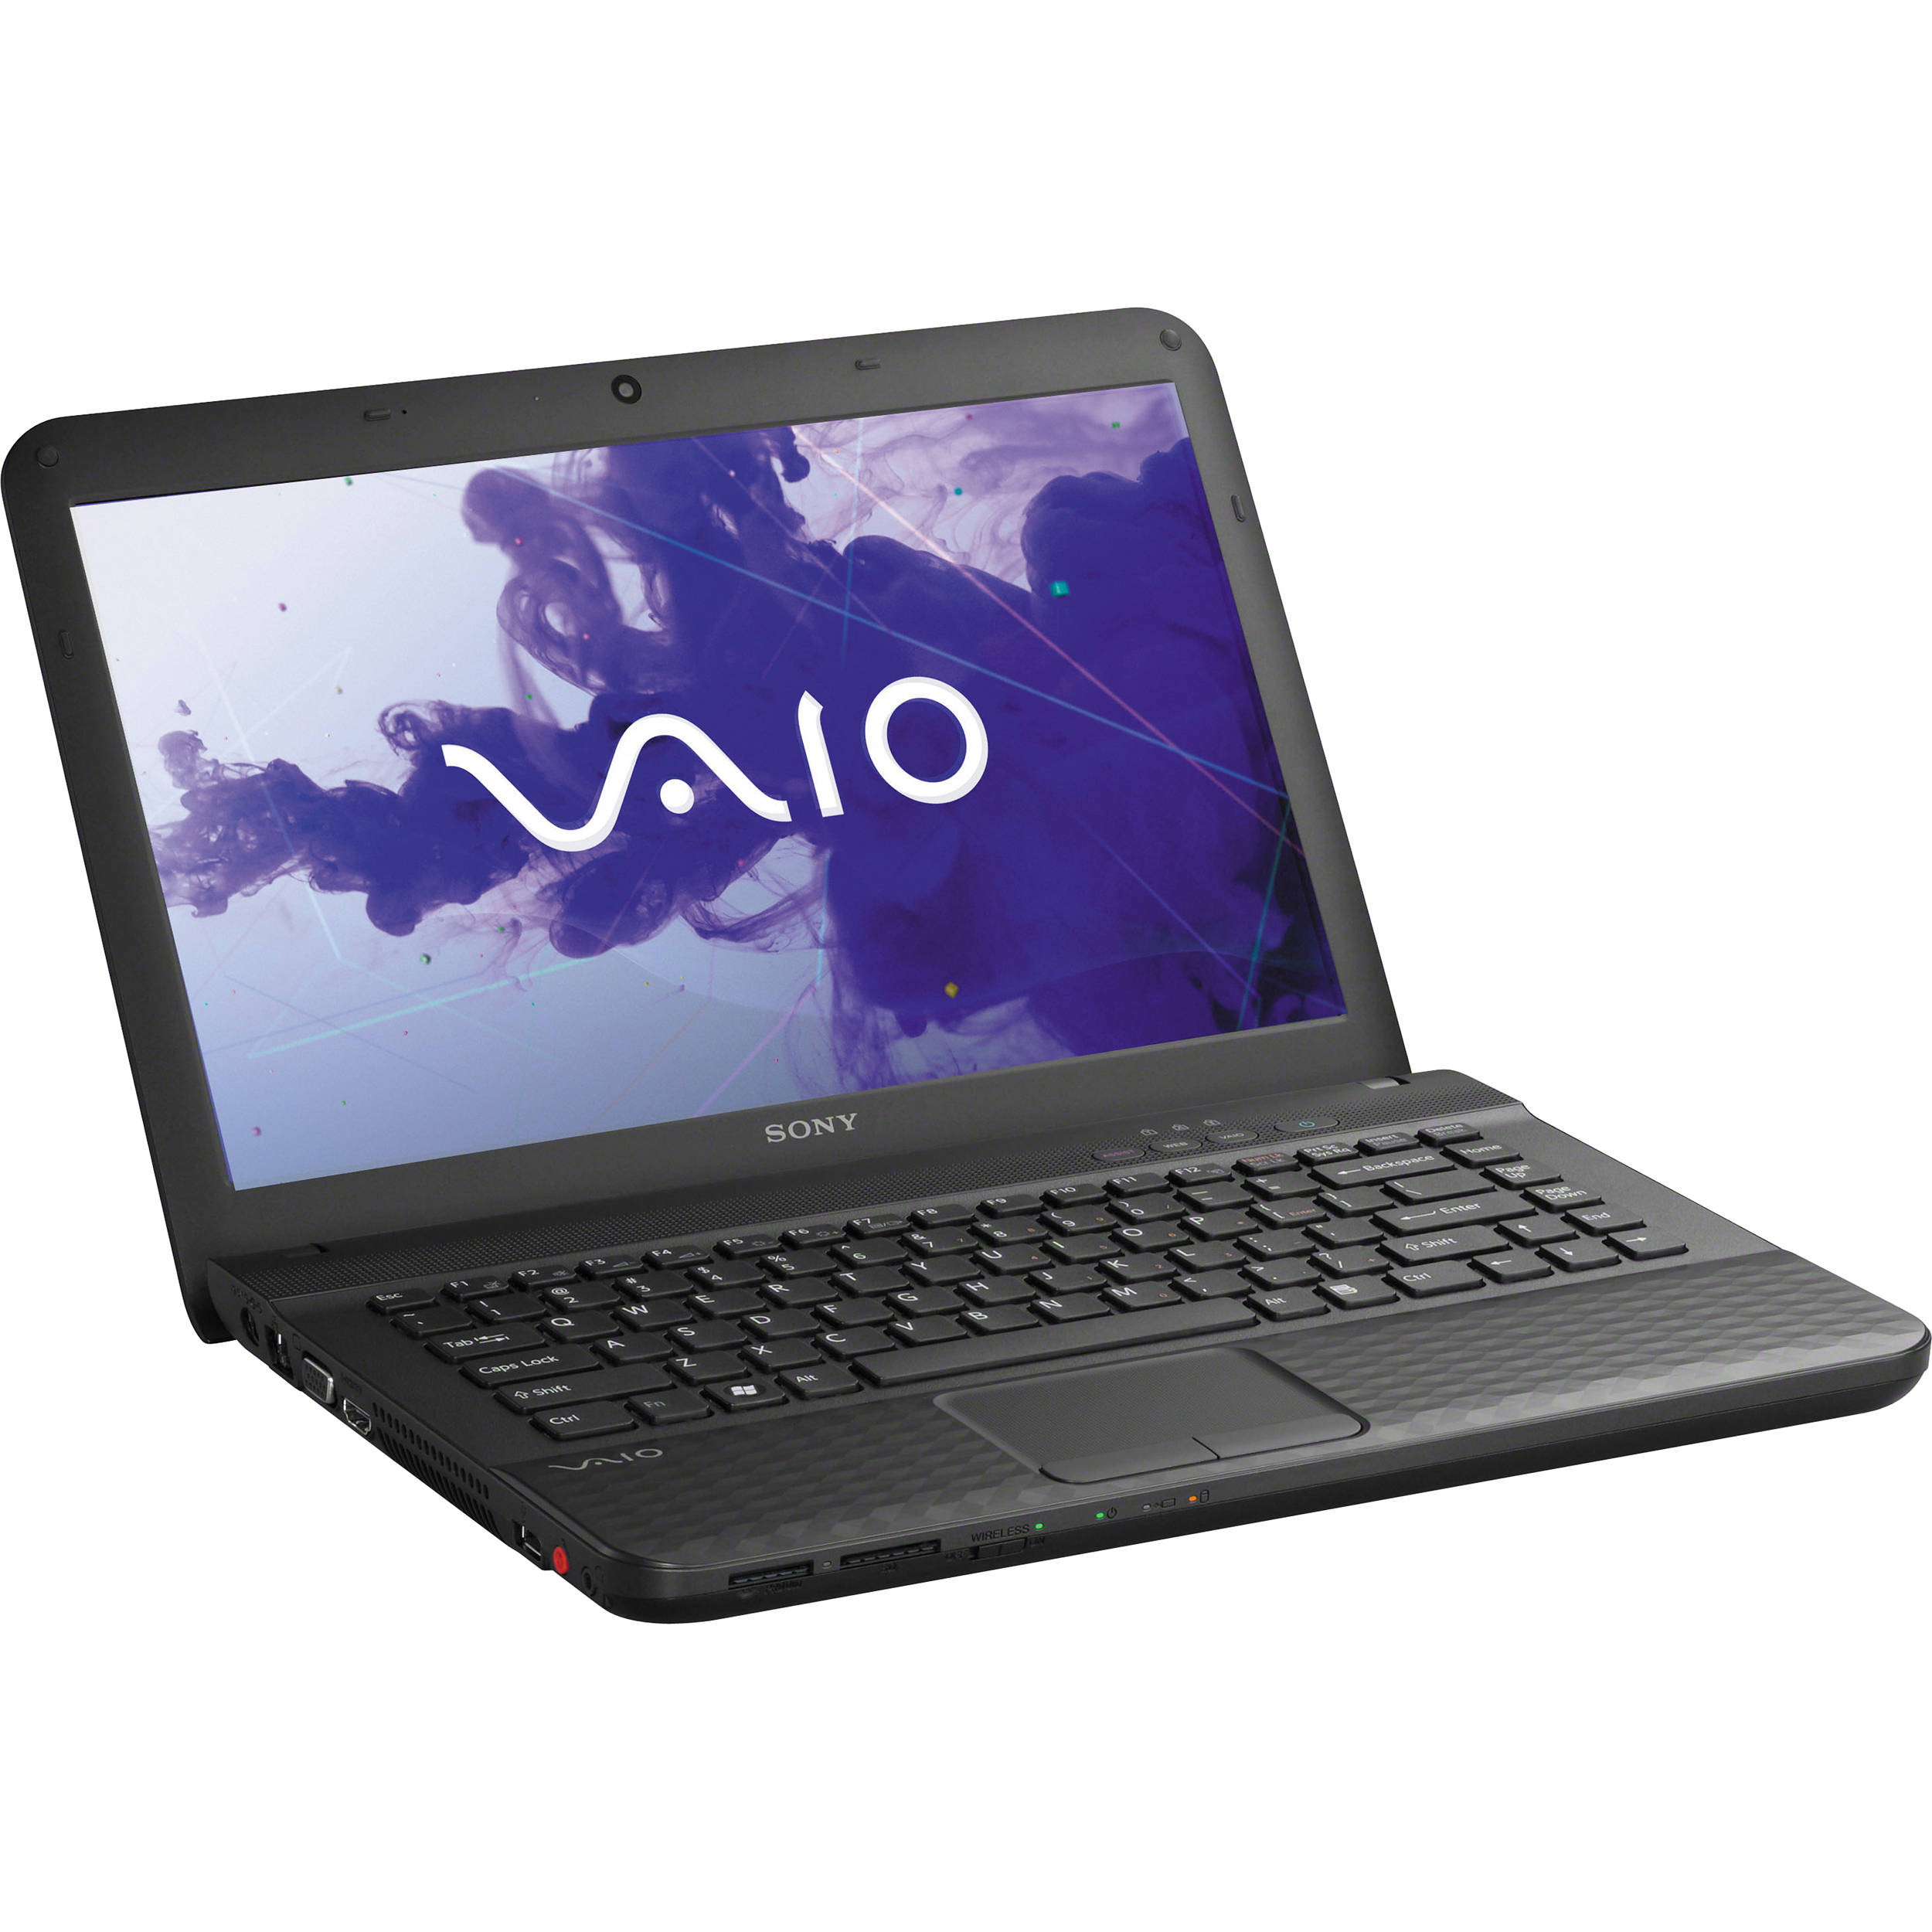 Sony Vaio VPCEG36FX Intel Wireless Display Driver FREE